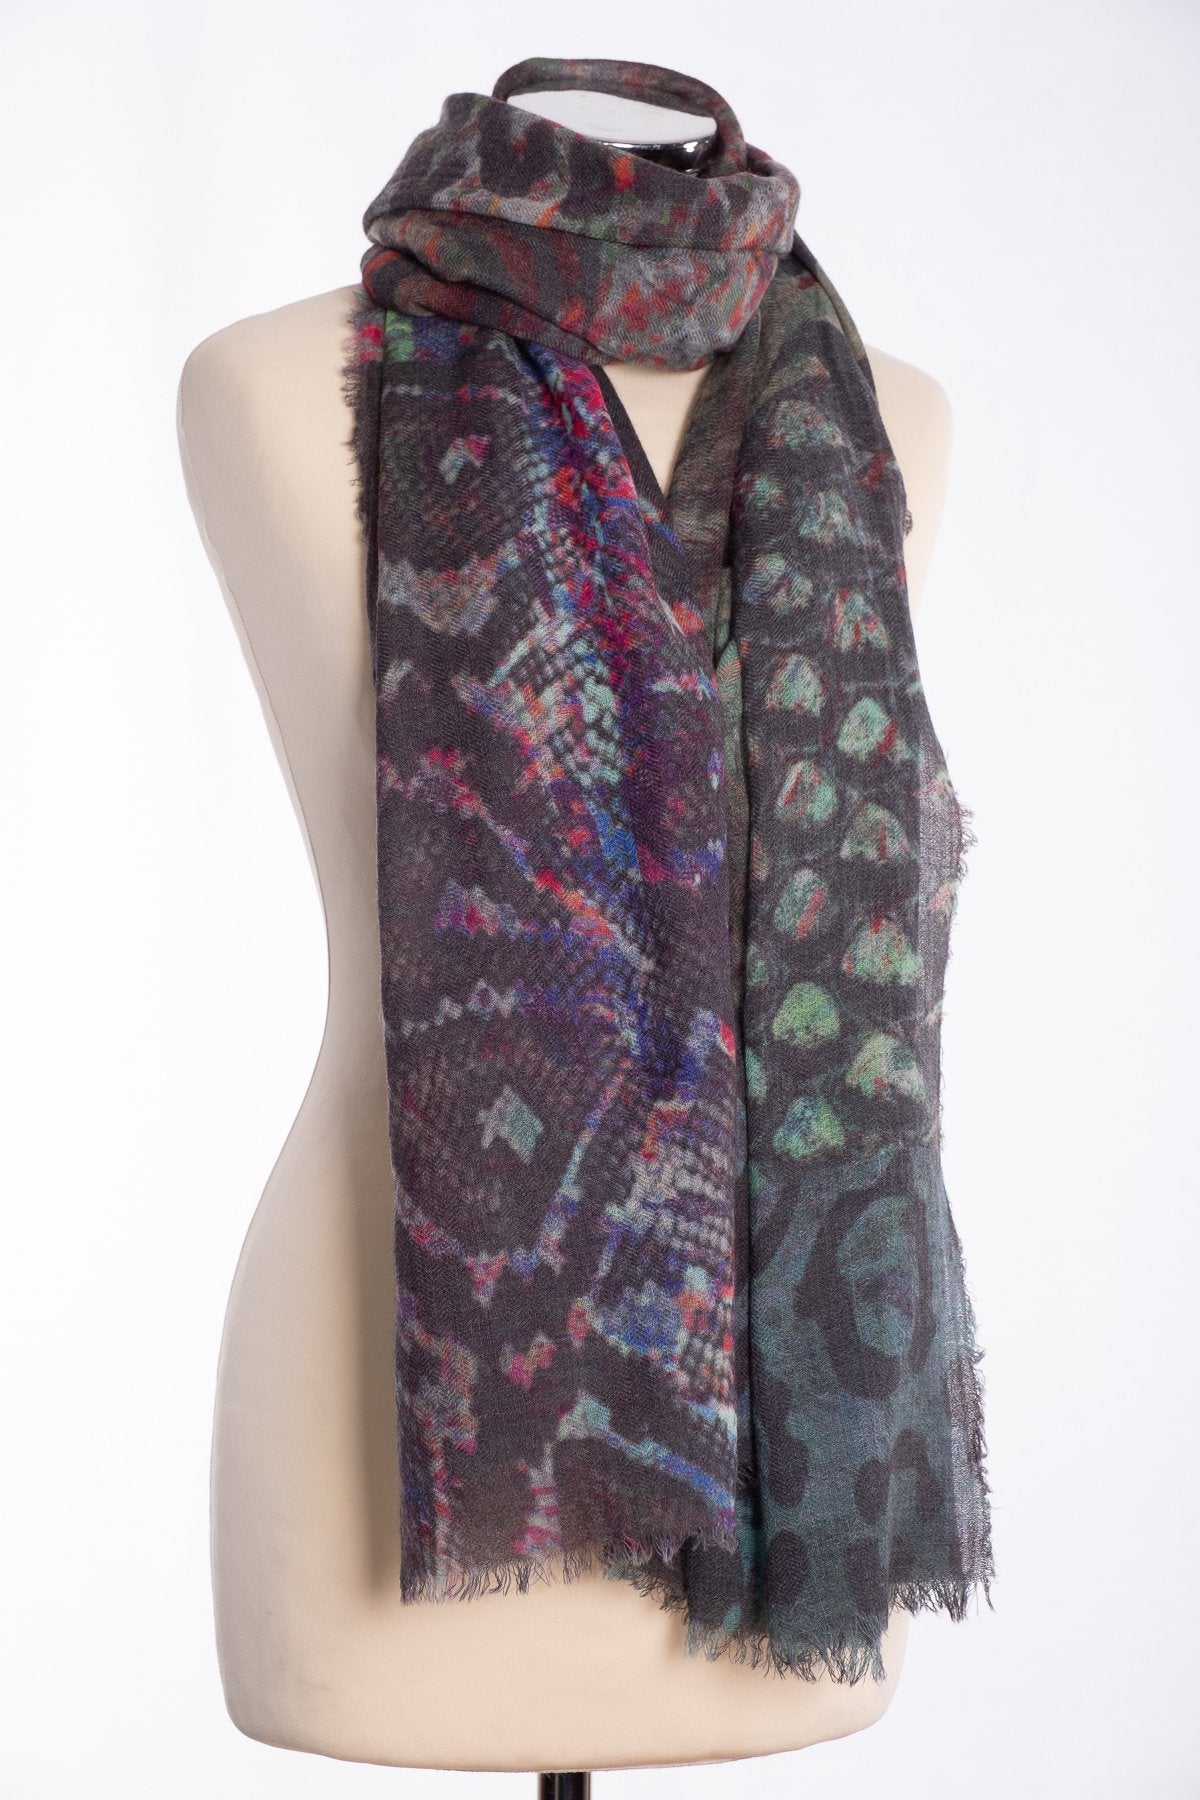 Ombre abstract snakeskin scarf, grey, tied view